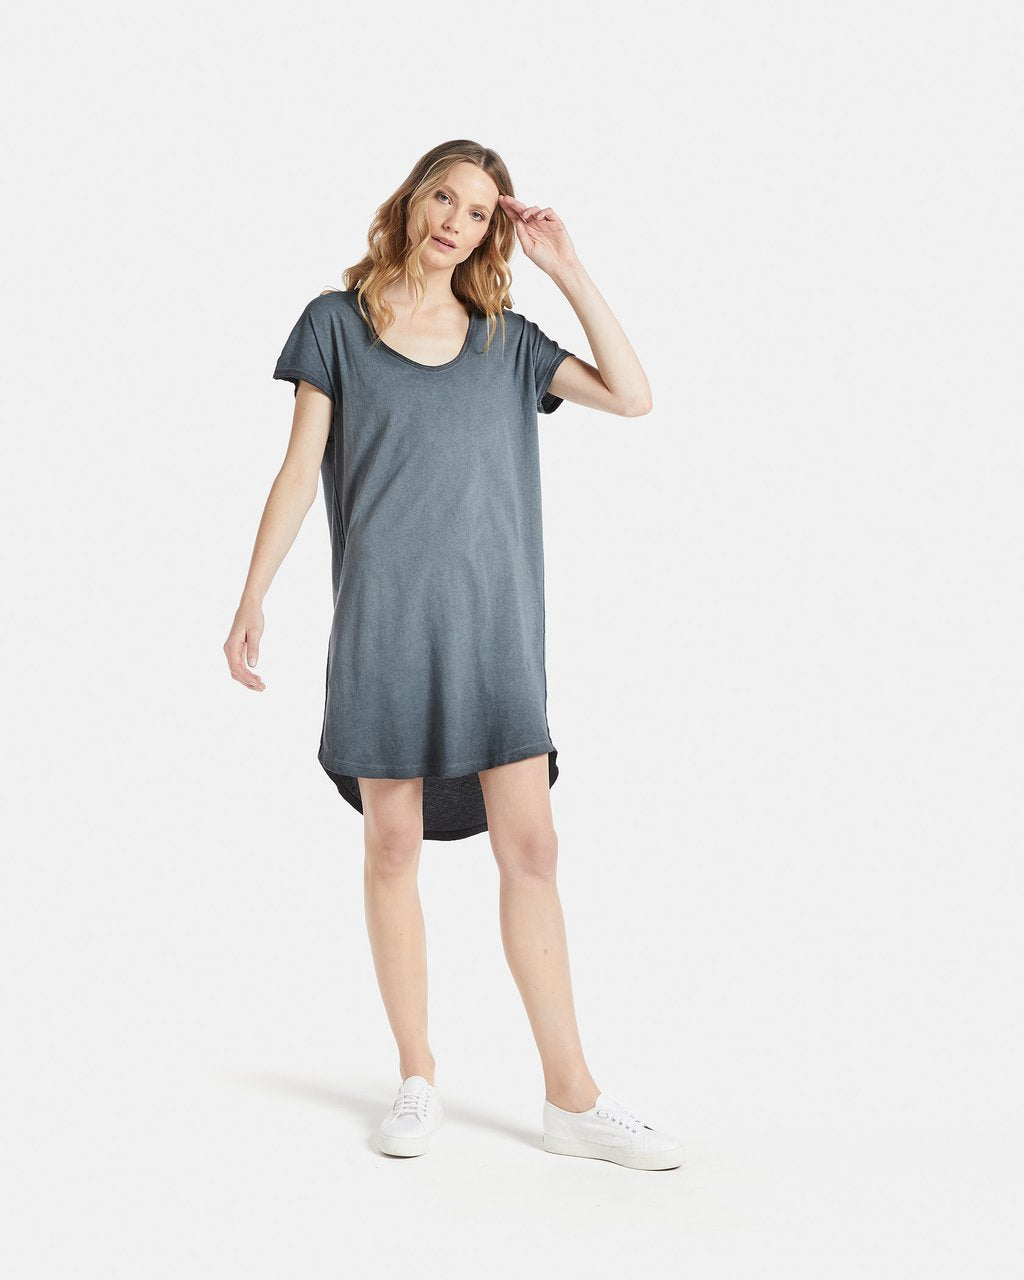 Jac & Mooki Naomi Dress - Tshirt Dress - Colour Fade Tshirt Dress - Basic State - Loose fit - Relaxed Fit